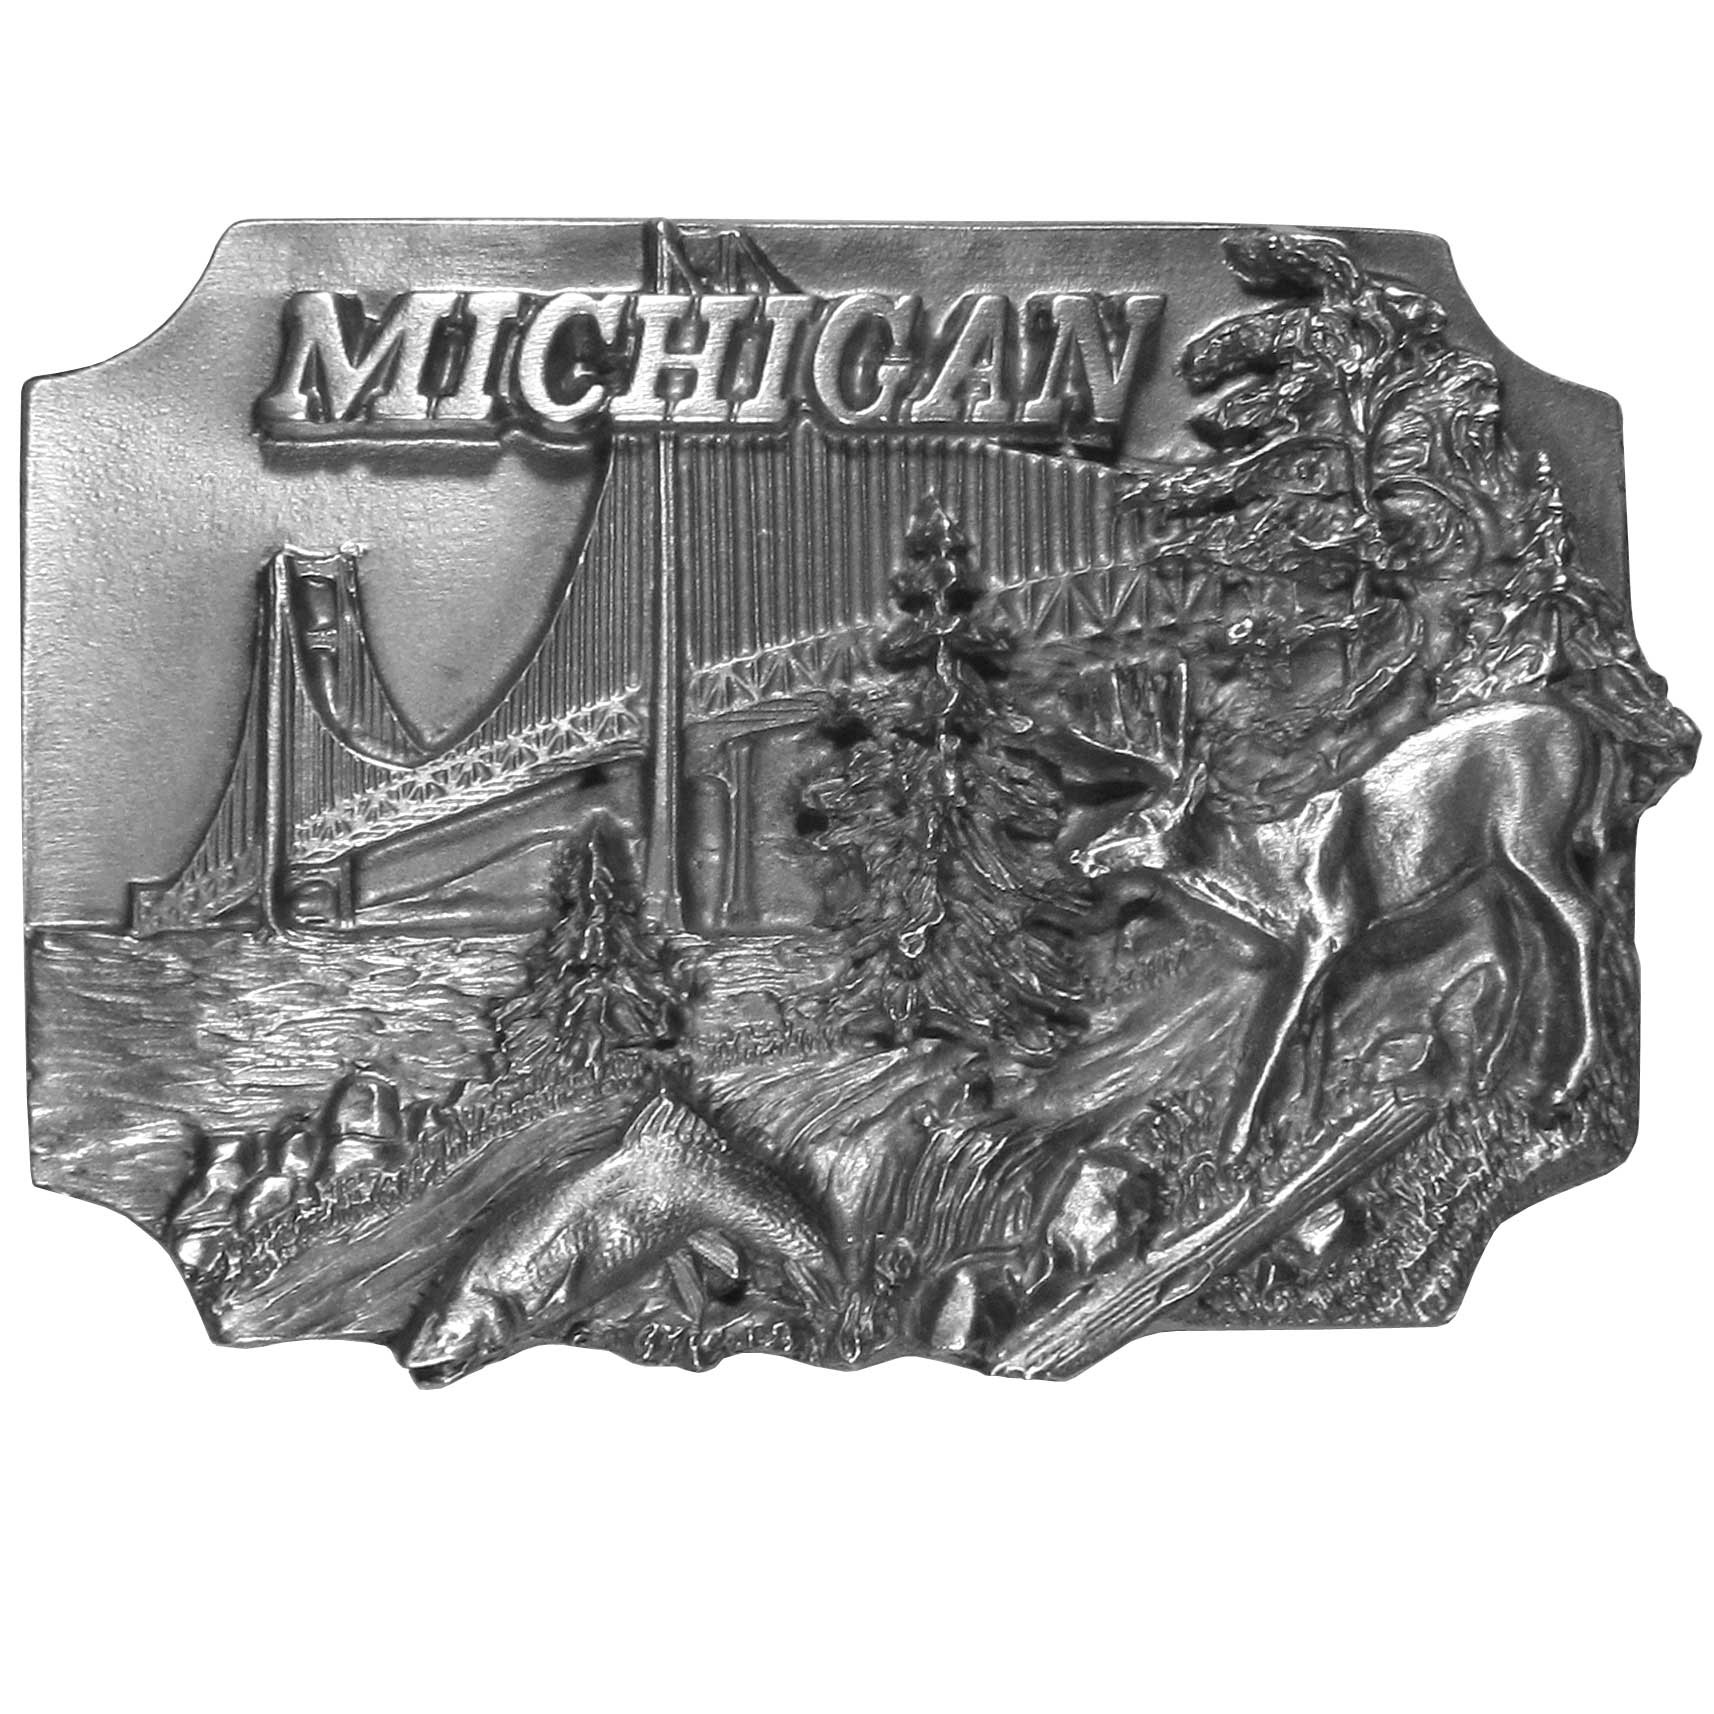 "Michigan Antiqued Belt Buckle - ""This belt buckle celebrates Michigan!  """"Michigan"""" is written in bold on the top with the Mackinac Bridge, a deer, a fish jumping from a river and trees.  On the back are the words, """"Michigan became the 26th state on January 28, 1837.  The state tree is the White Pine, the state flower is the Apple Blossom and the state bird is the Robin."""""""